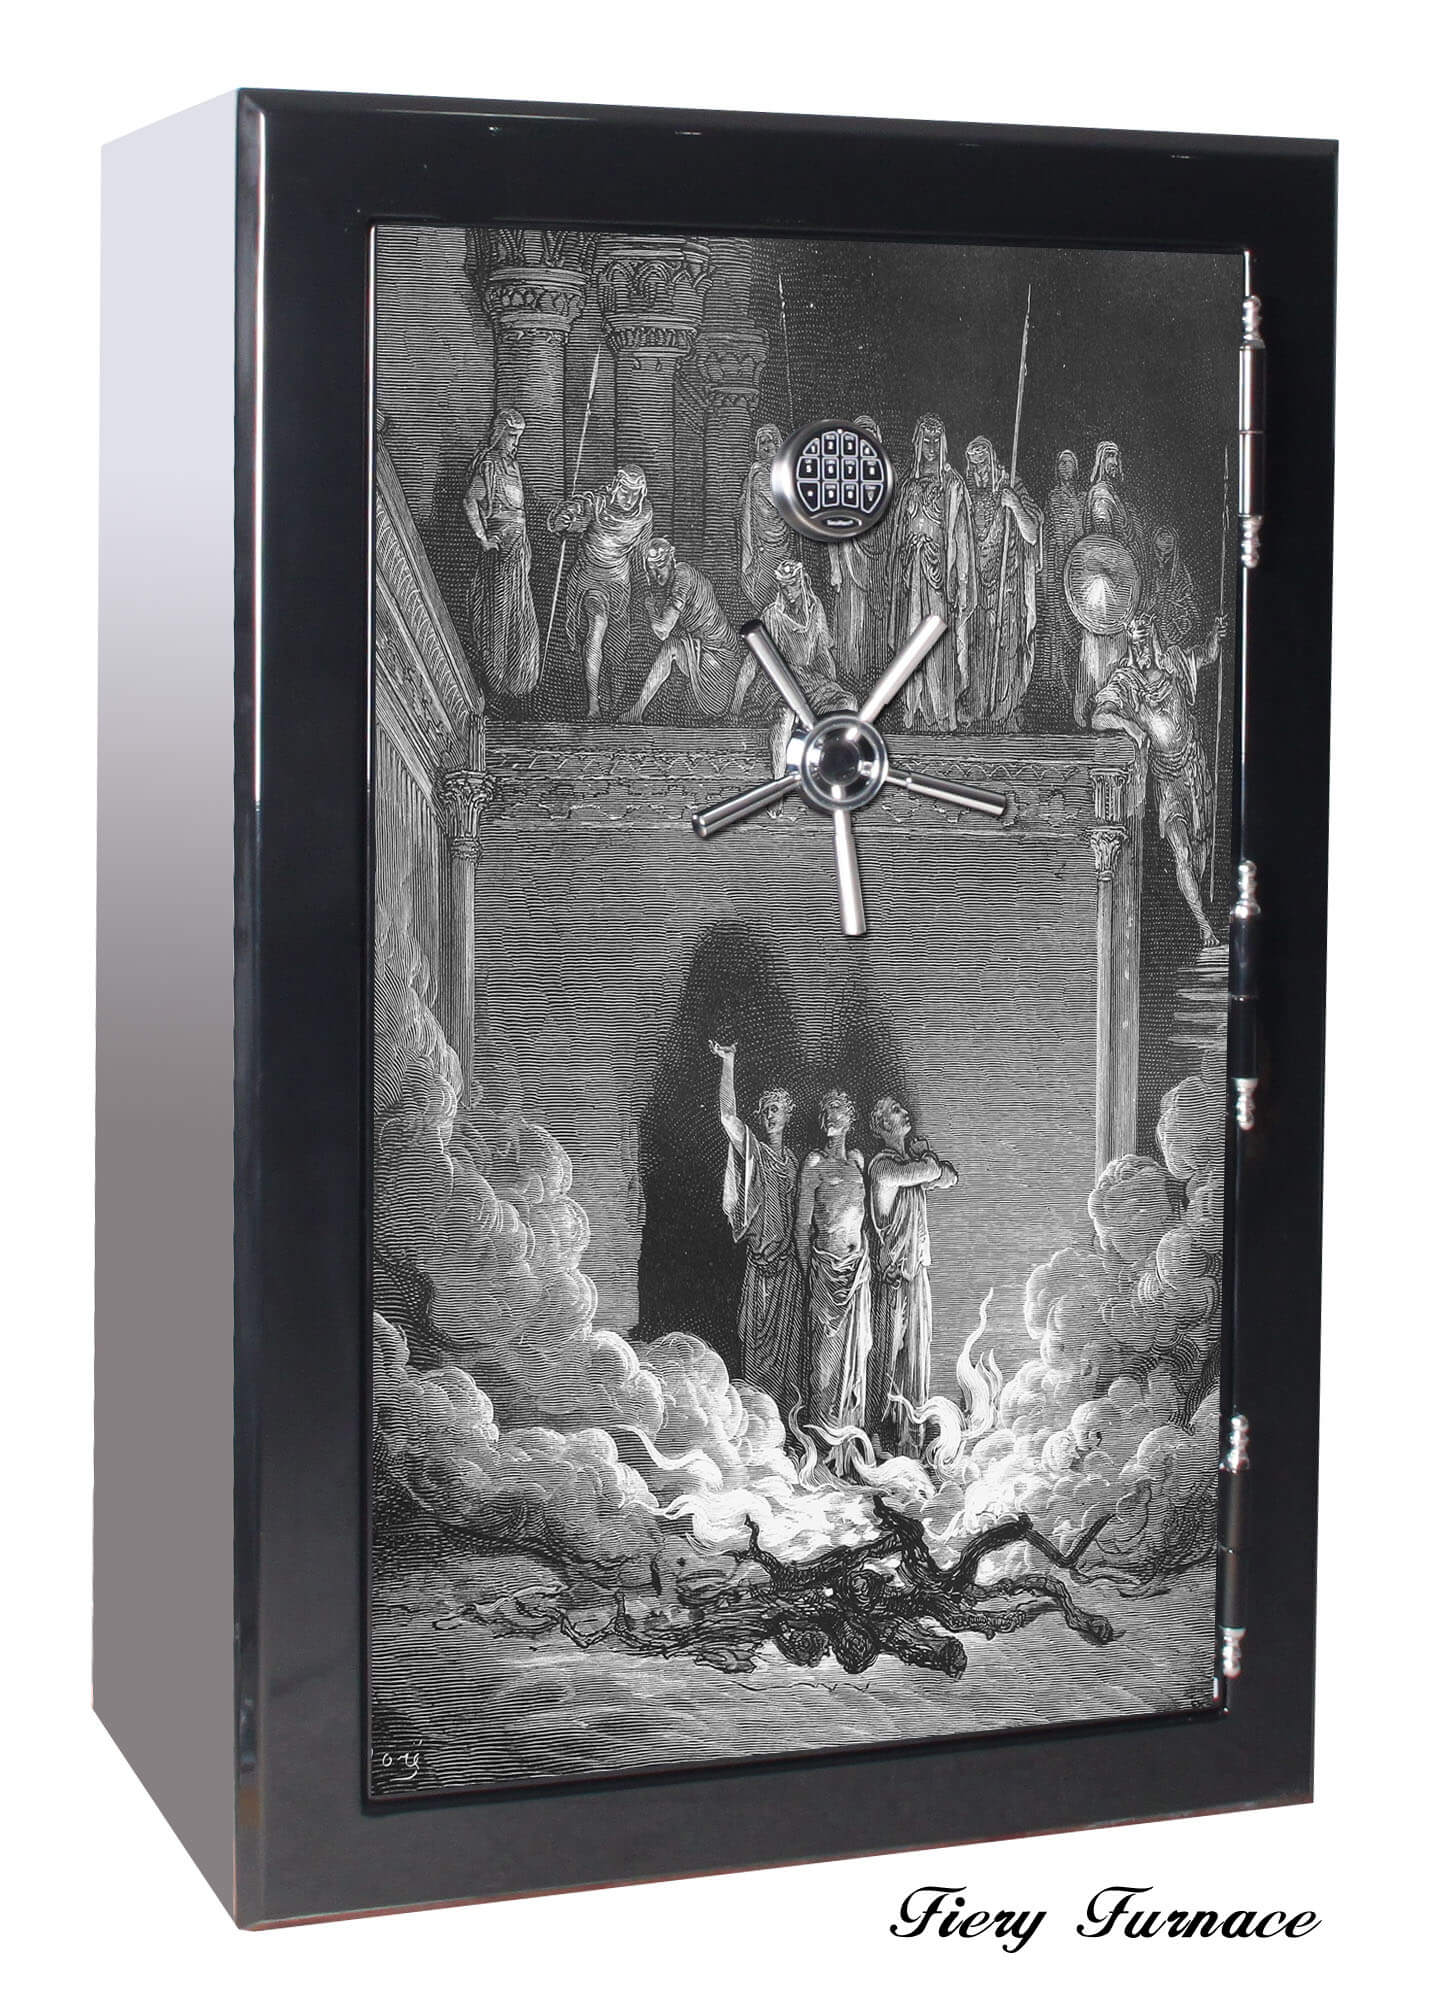 Huge 39 Gun Safe Old Glory Gun Safes Biblical Series 2